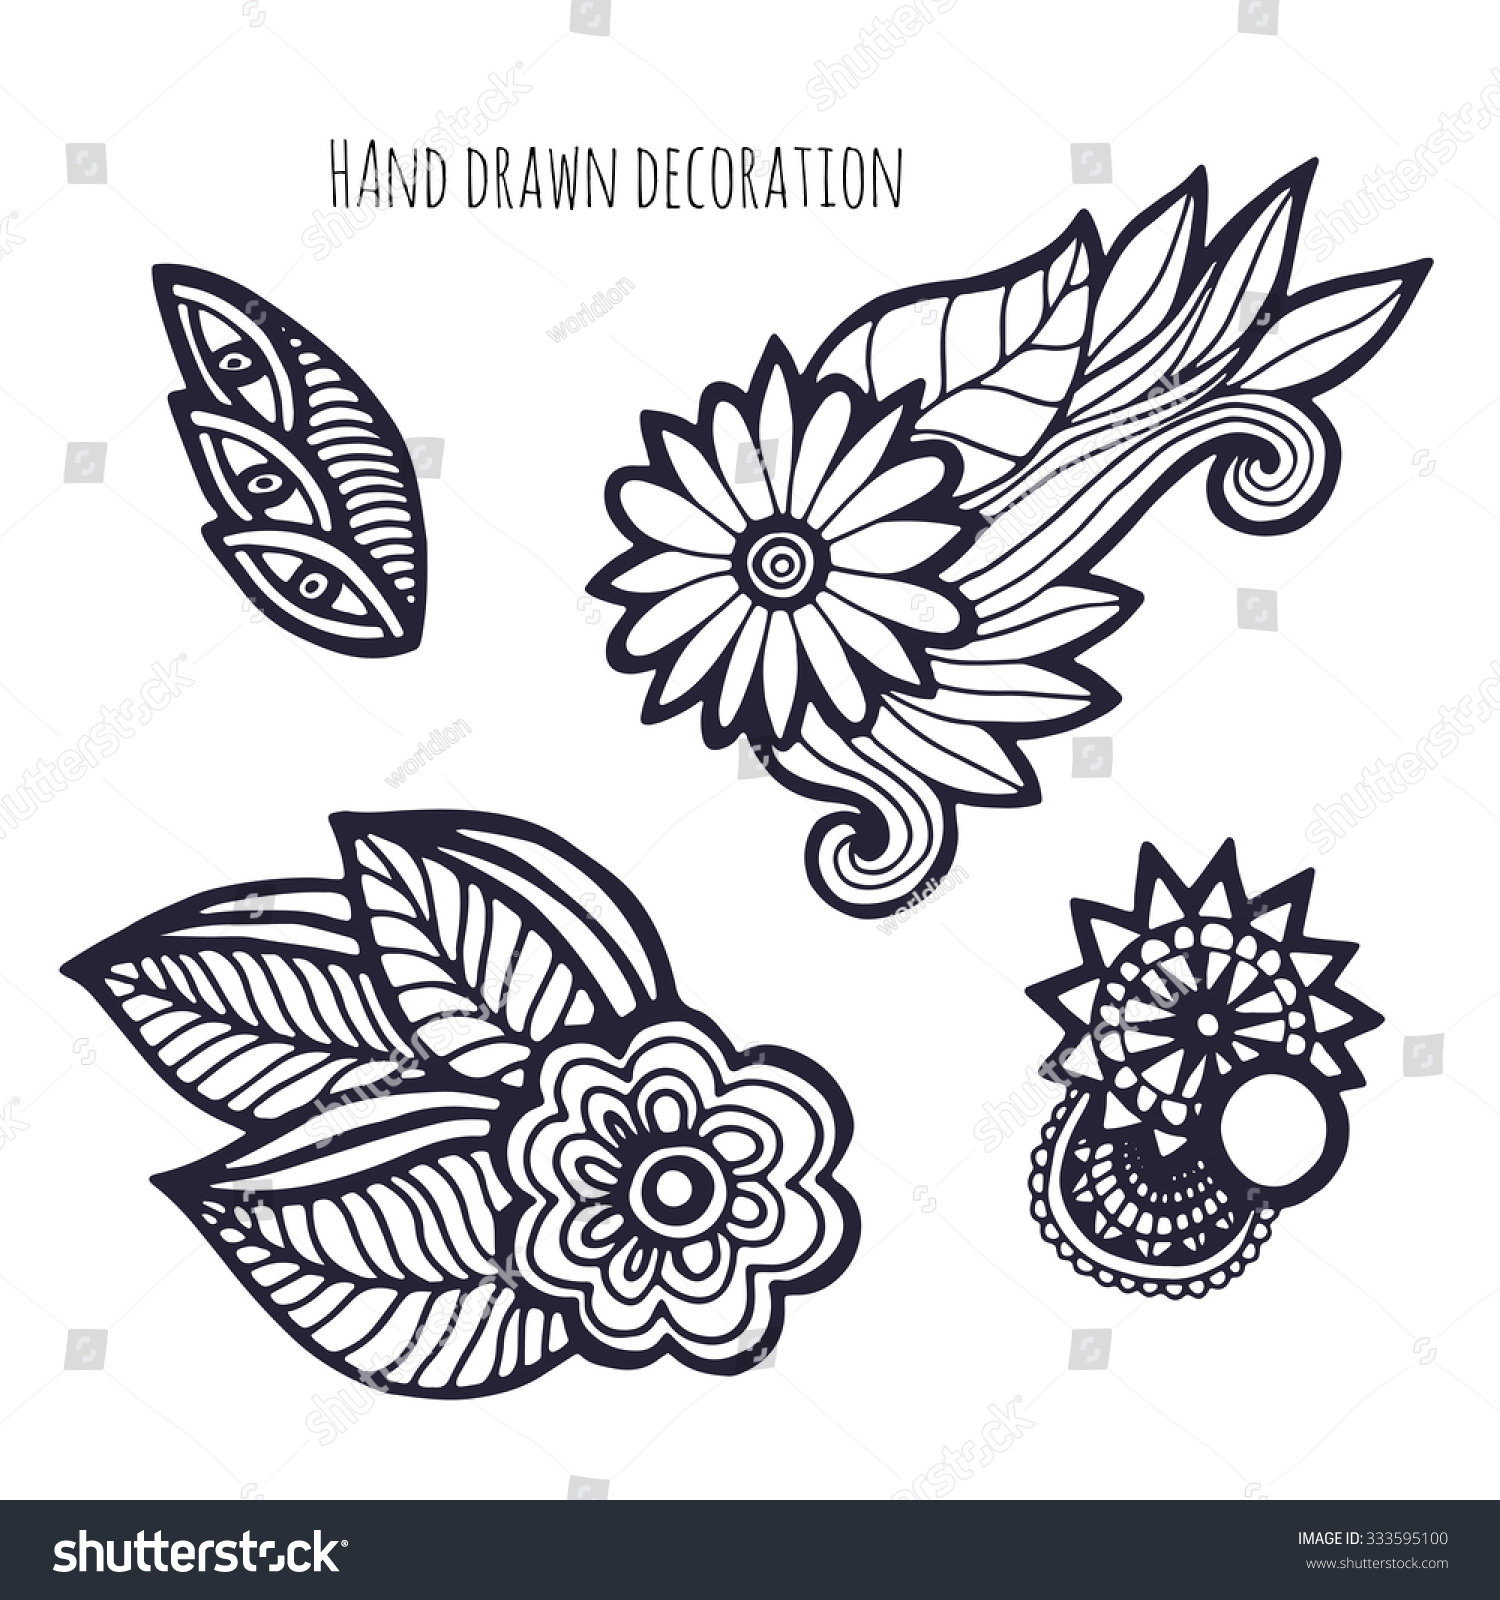 Hand Drawn Flowers Coloring Page Decoration Vector Set With Whimsical